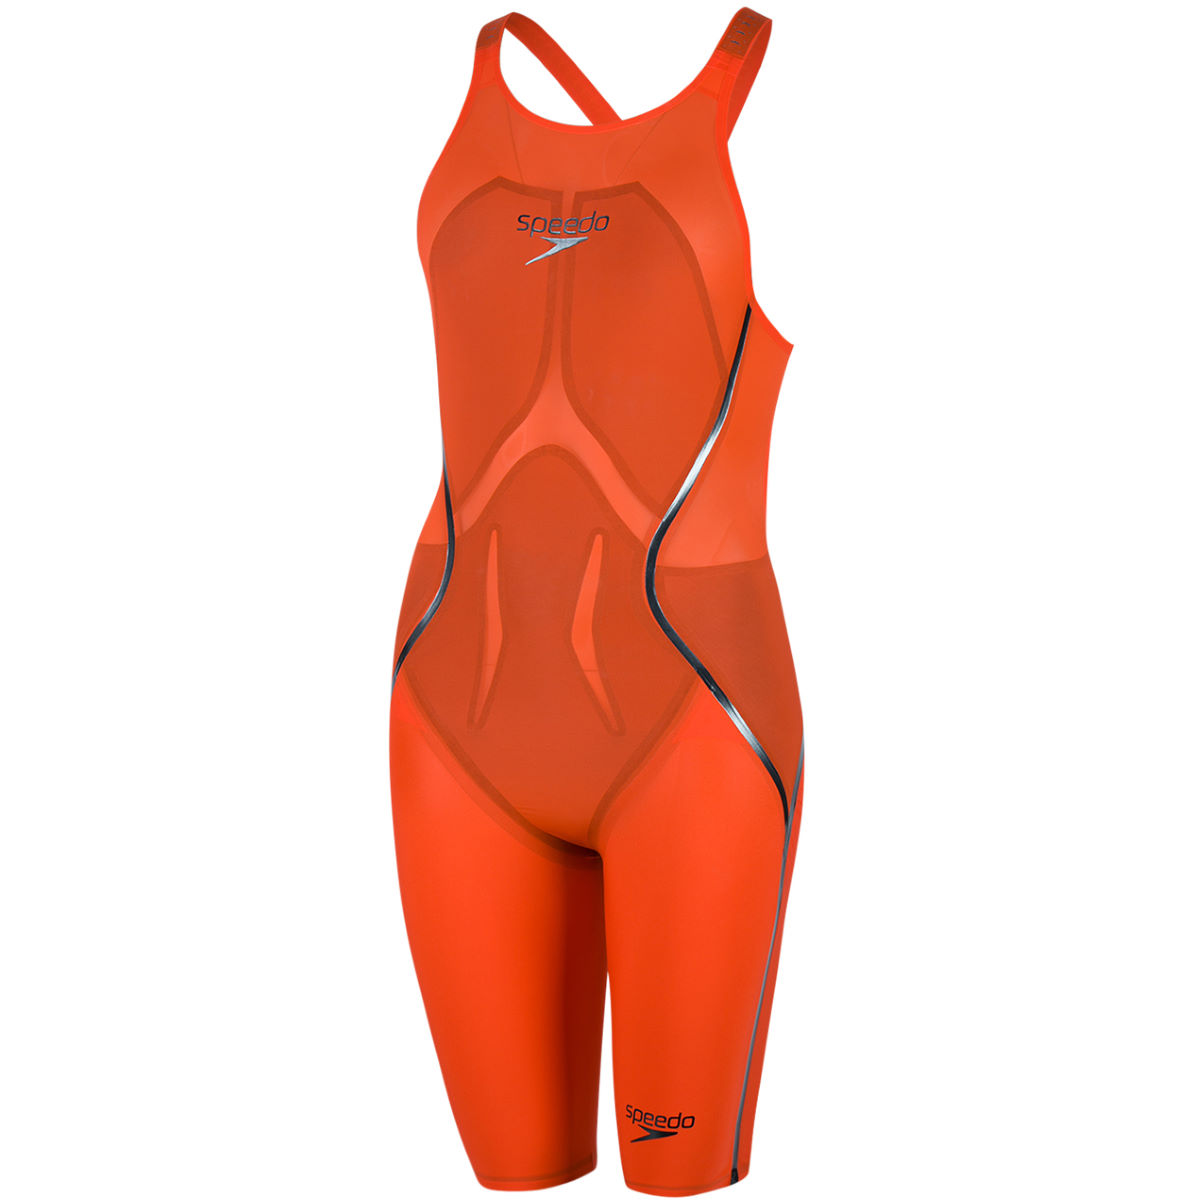 9106945167 Bargain and Discounted Bargain and Discounted Speedo Products at ...